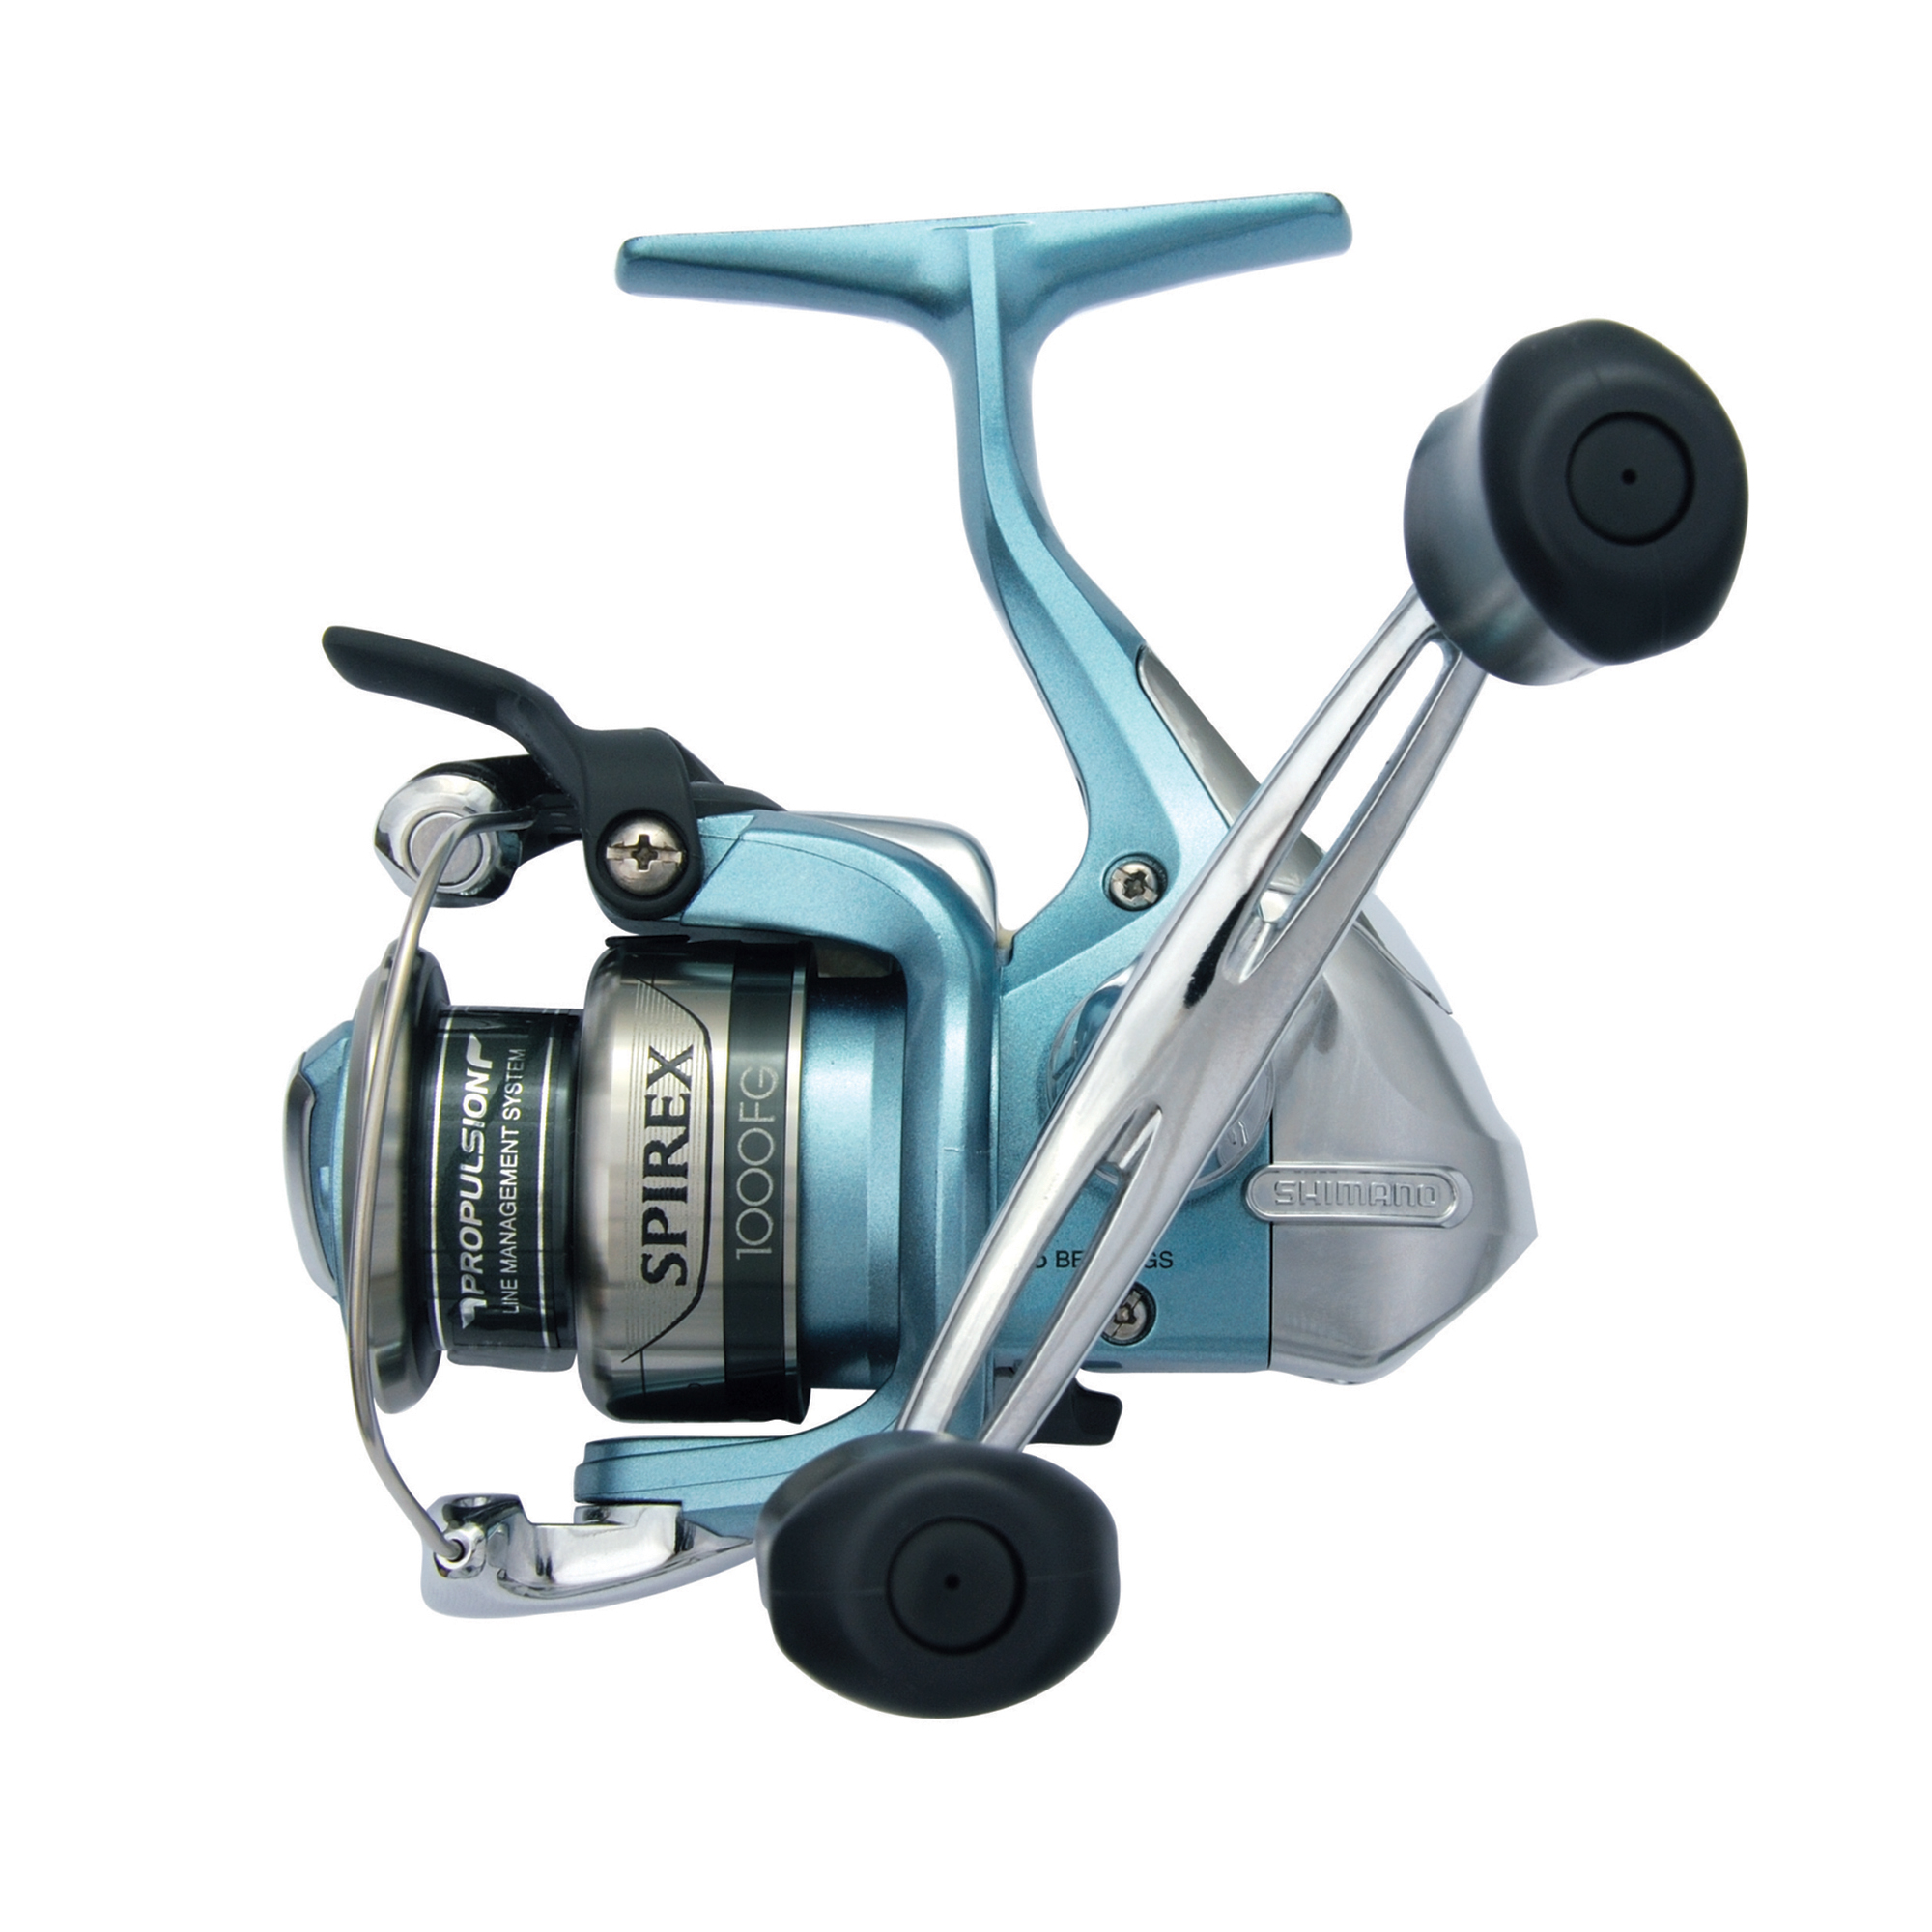 "Shimano Spirex Front Drag Spinning Reel 1000 Reel Size, 6.2:1 Gear Ratio, 28"" Retrieve Rate, 6 Bearings, Ambidextrous"